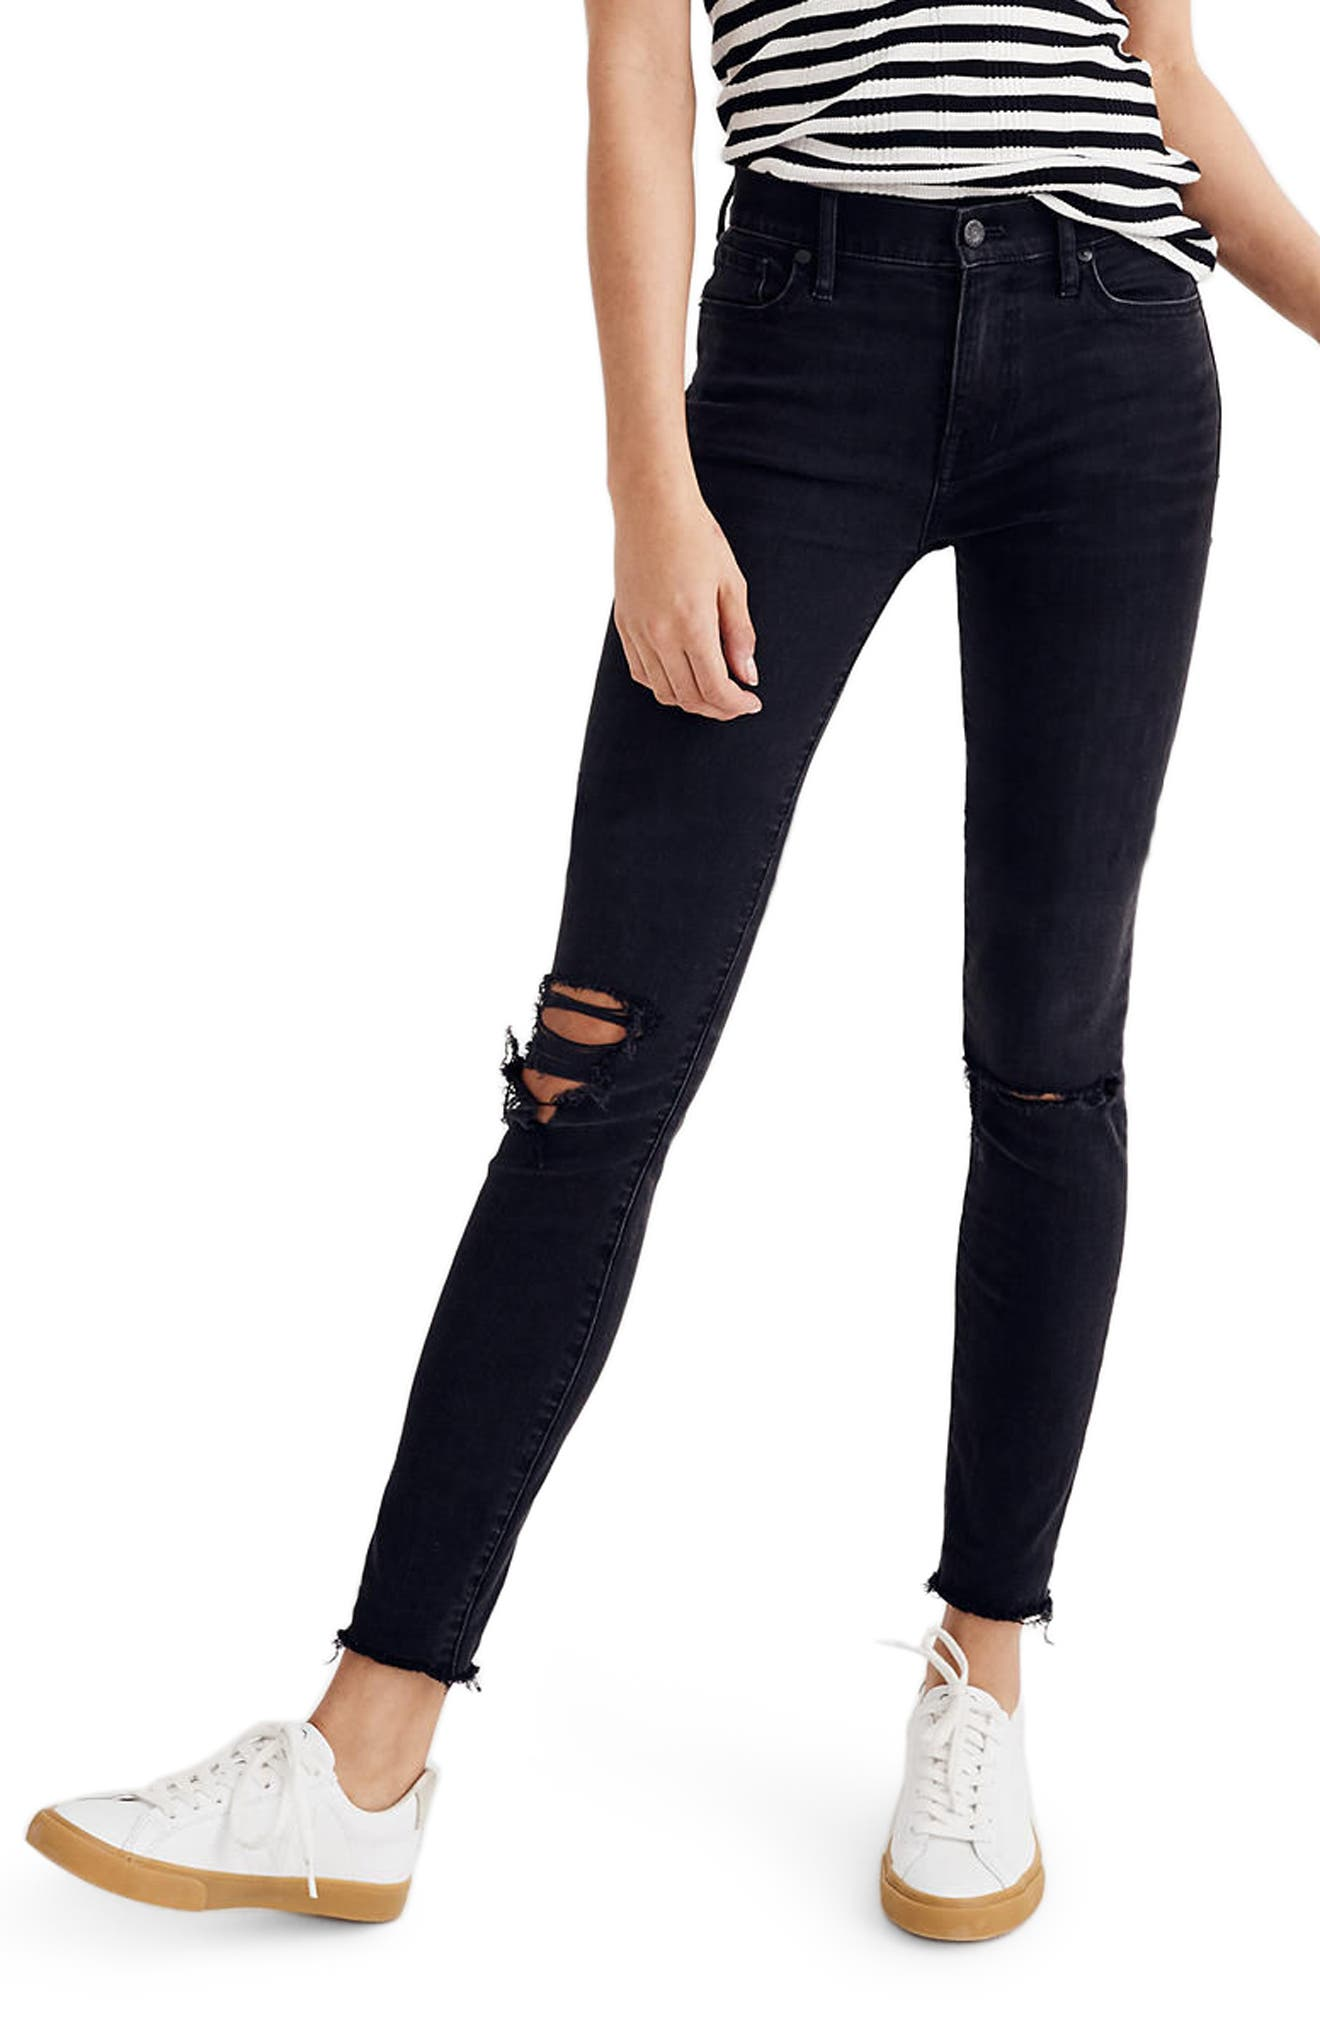 Madewell 9-Inch High Waist Skinny Jeans (Black Sea)